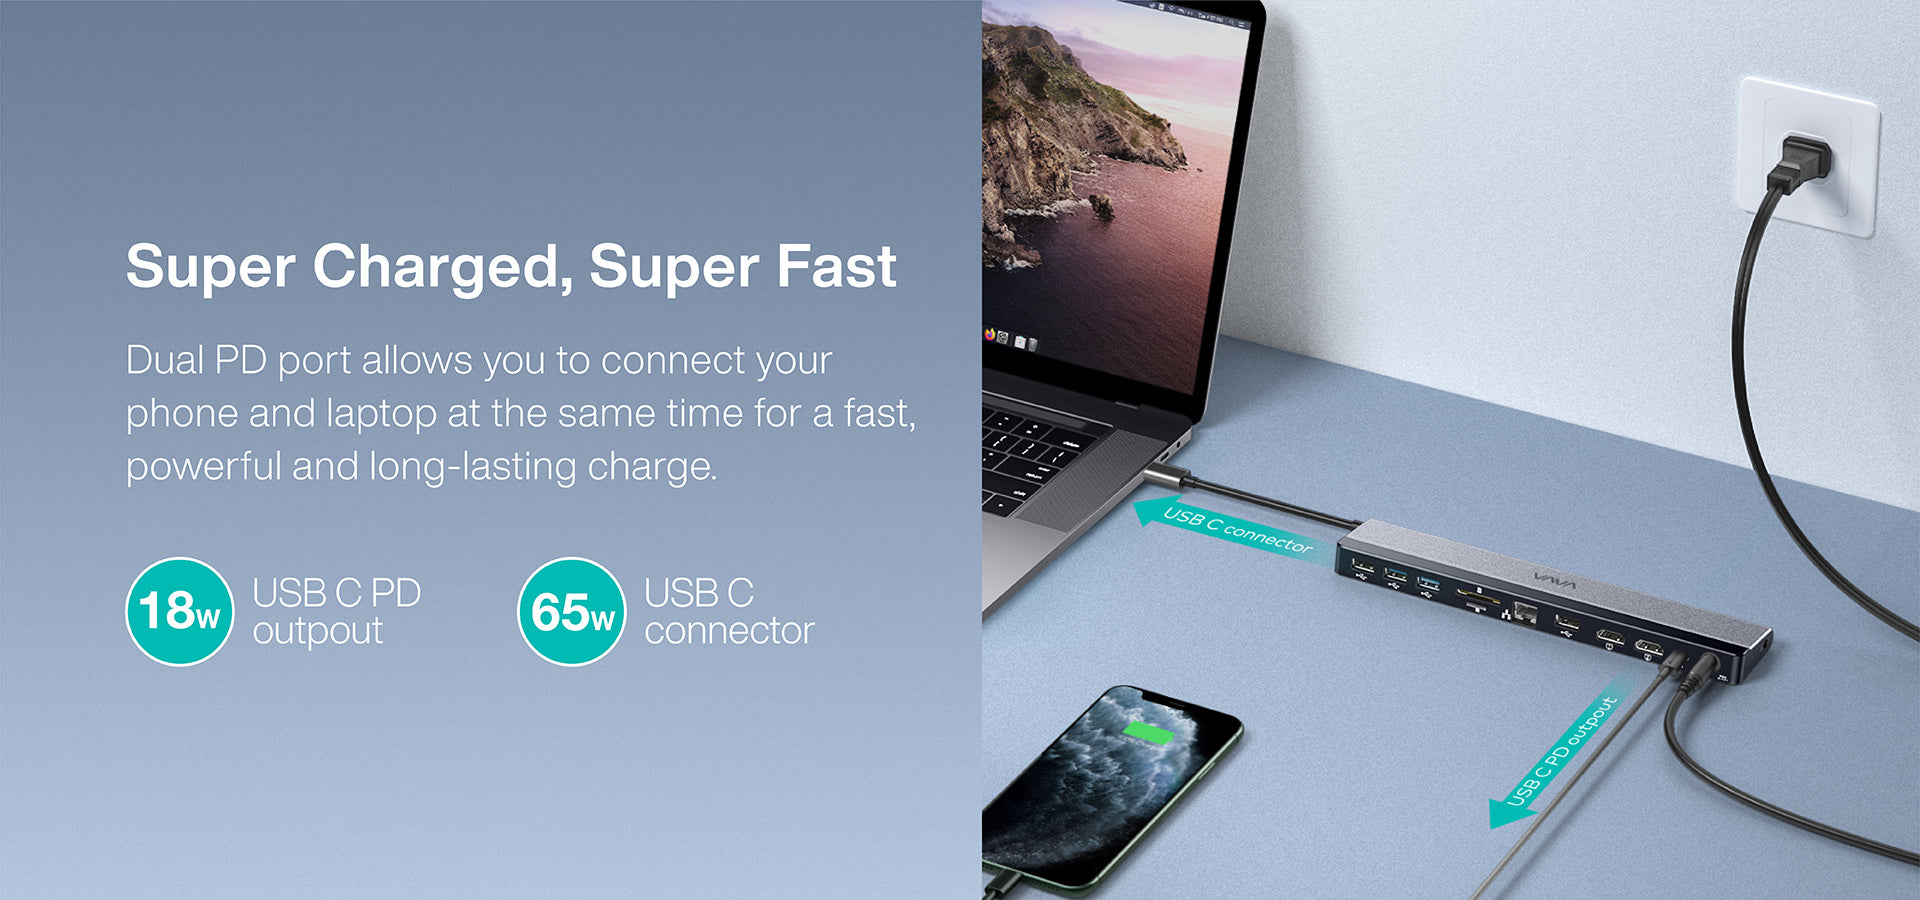 super charged, super fast